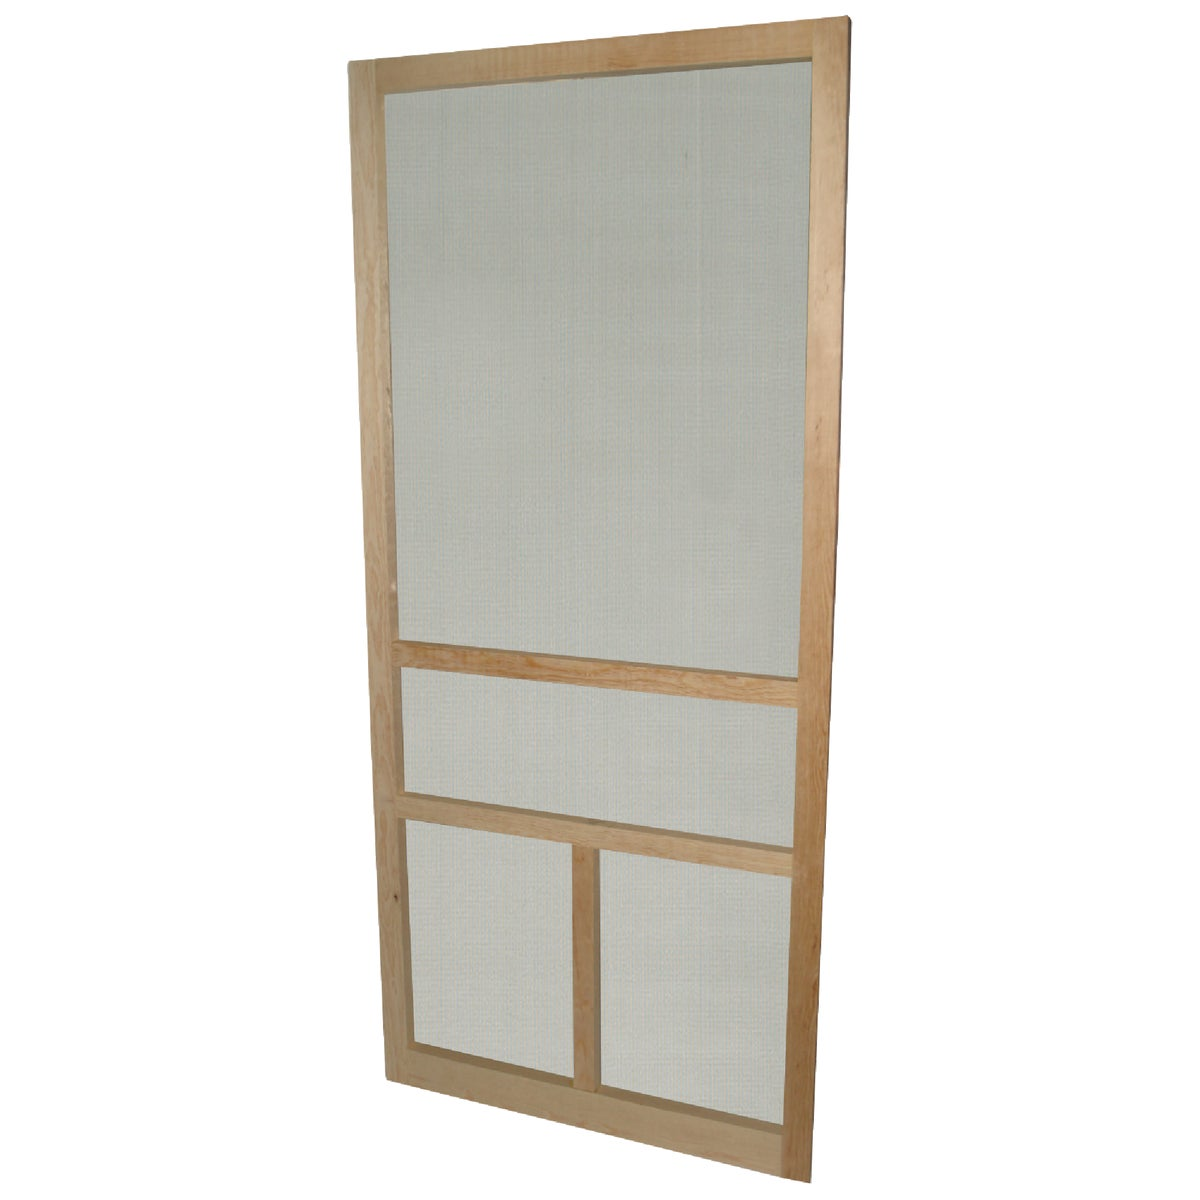 "32"" T-BAR SCREEN DOOR - 2868TBAR by Wood Prod Manufactur"